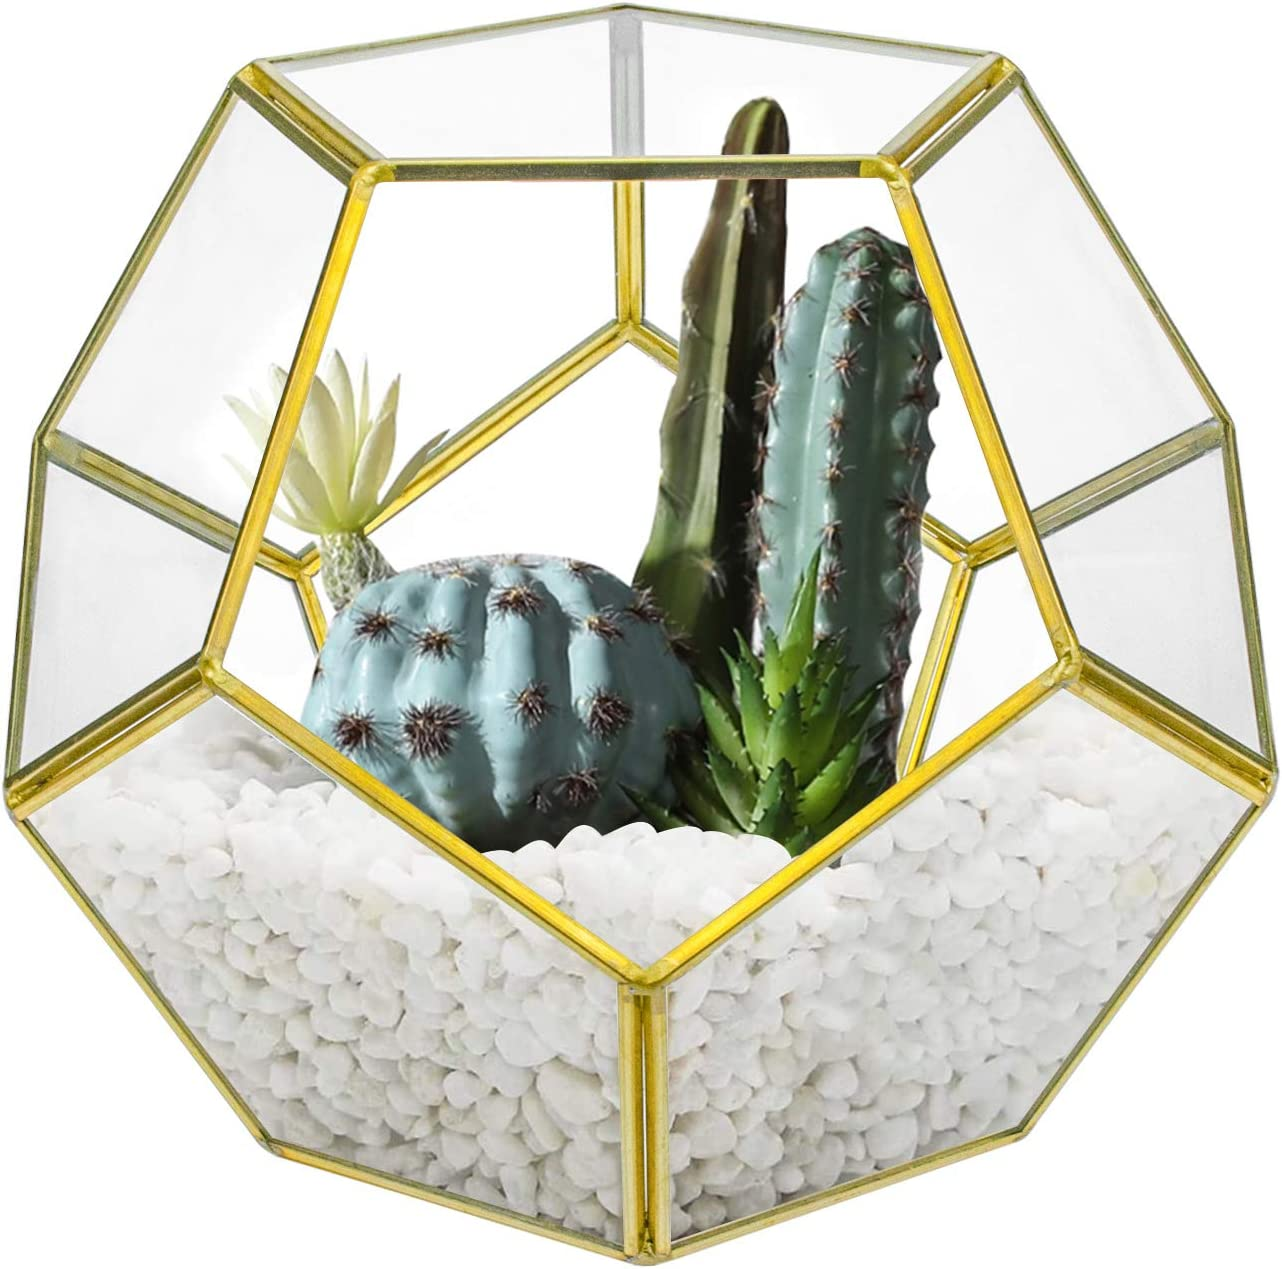 Suwimut Glass Geometric Terrarium, 7.5 x 7.5 x 6.3 Inches Pentagon Regular Planter Container for Succulent, Fern, Moss, Air Plants, Miniature Fairy Garden, Home Shelf Decor (No Plants Included)